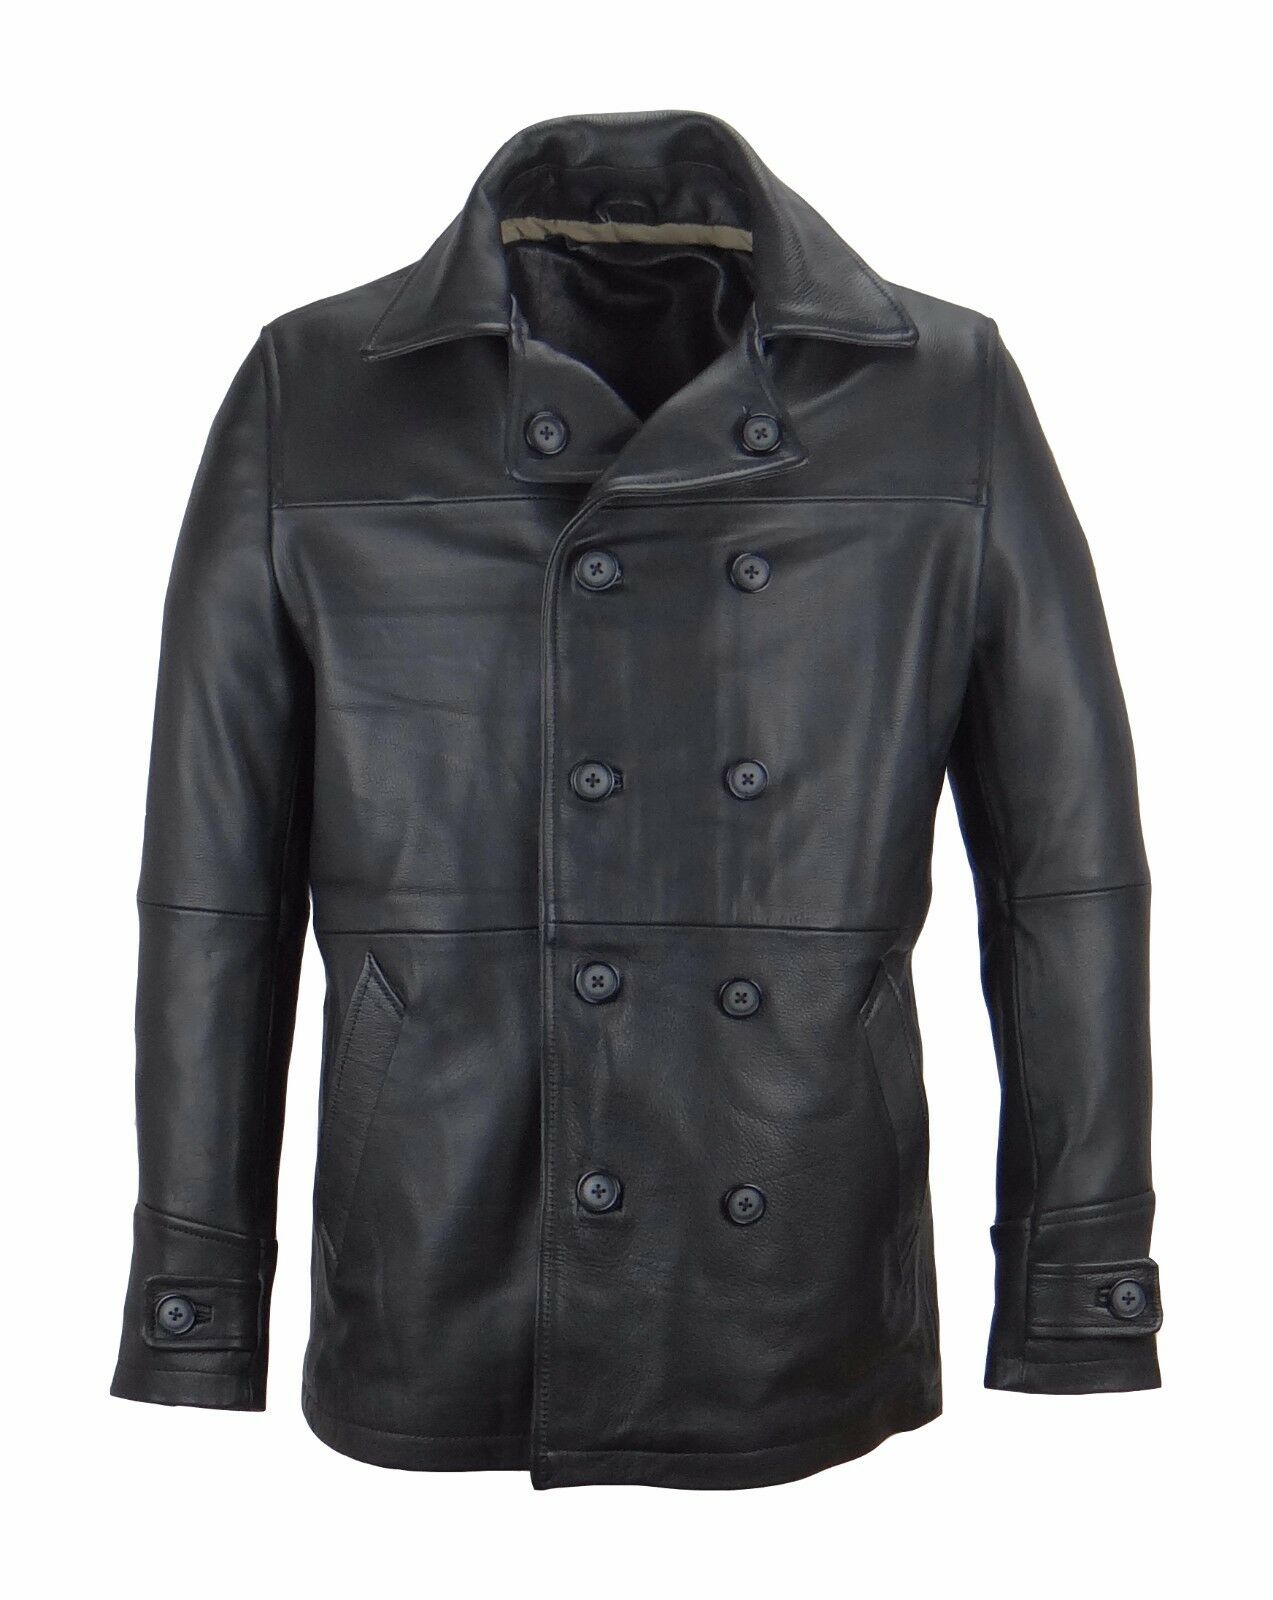 Uomo Breasted Cappotto Real Lana Tailorosso Collar Single Breasted Uomo Mid Long Trench Overcoat 93b3d5